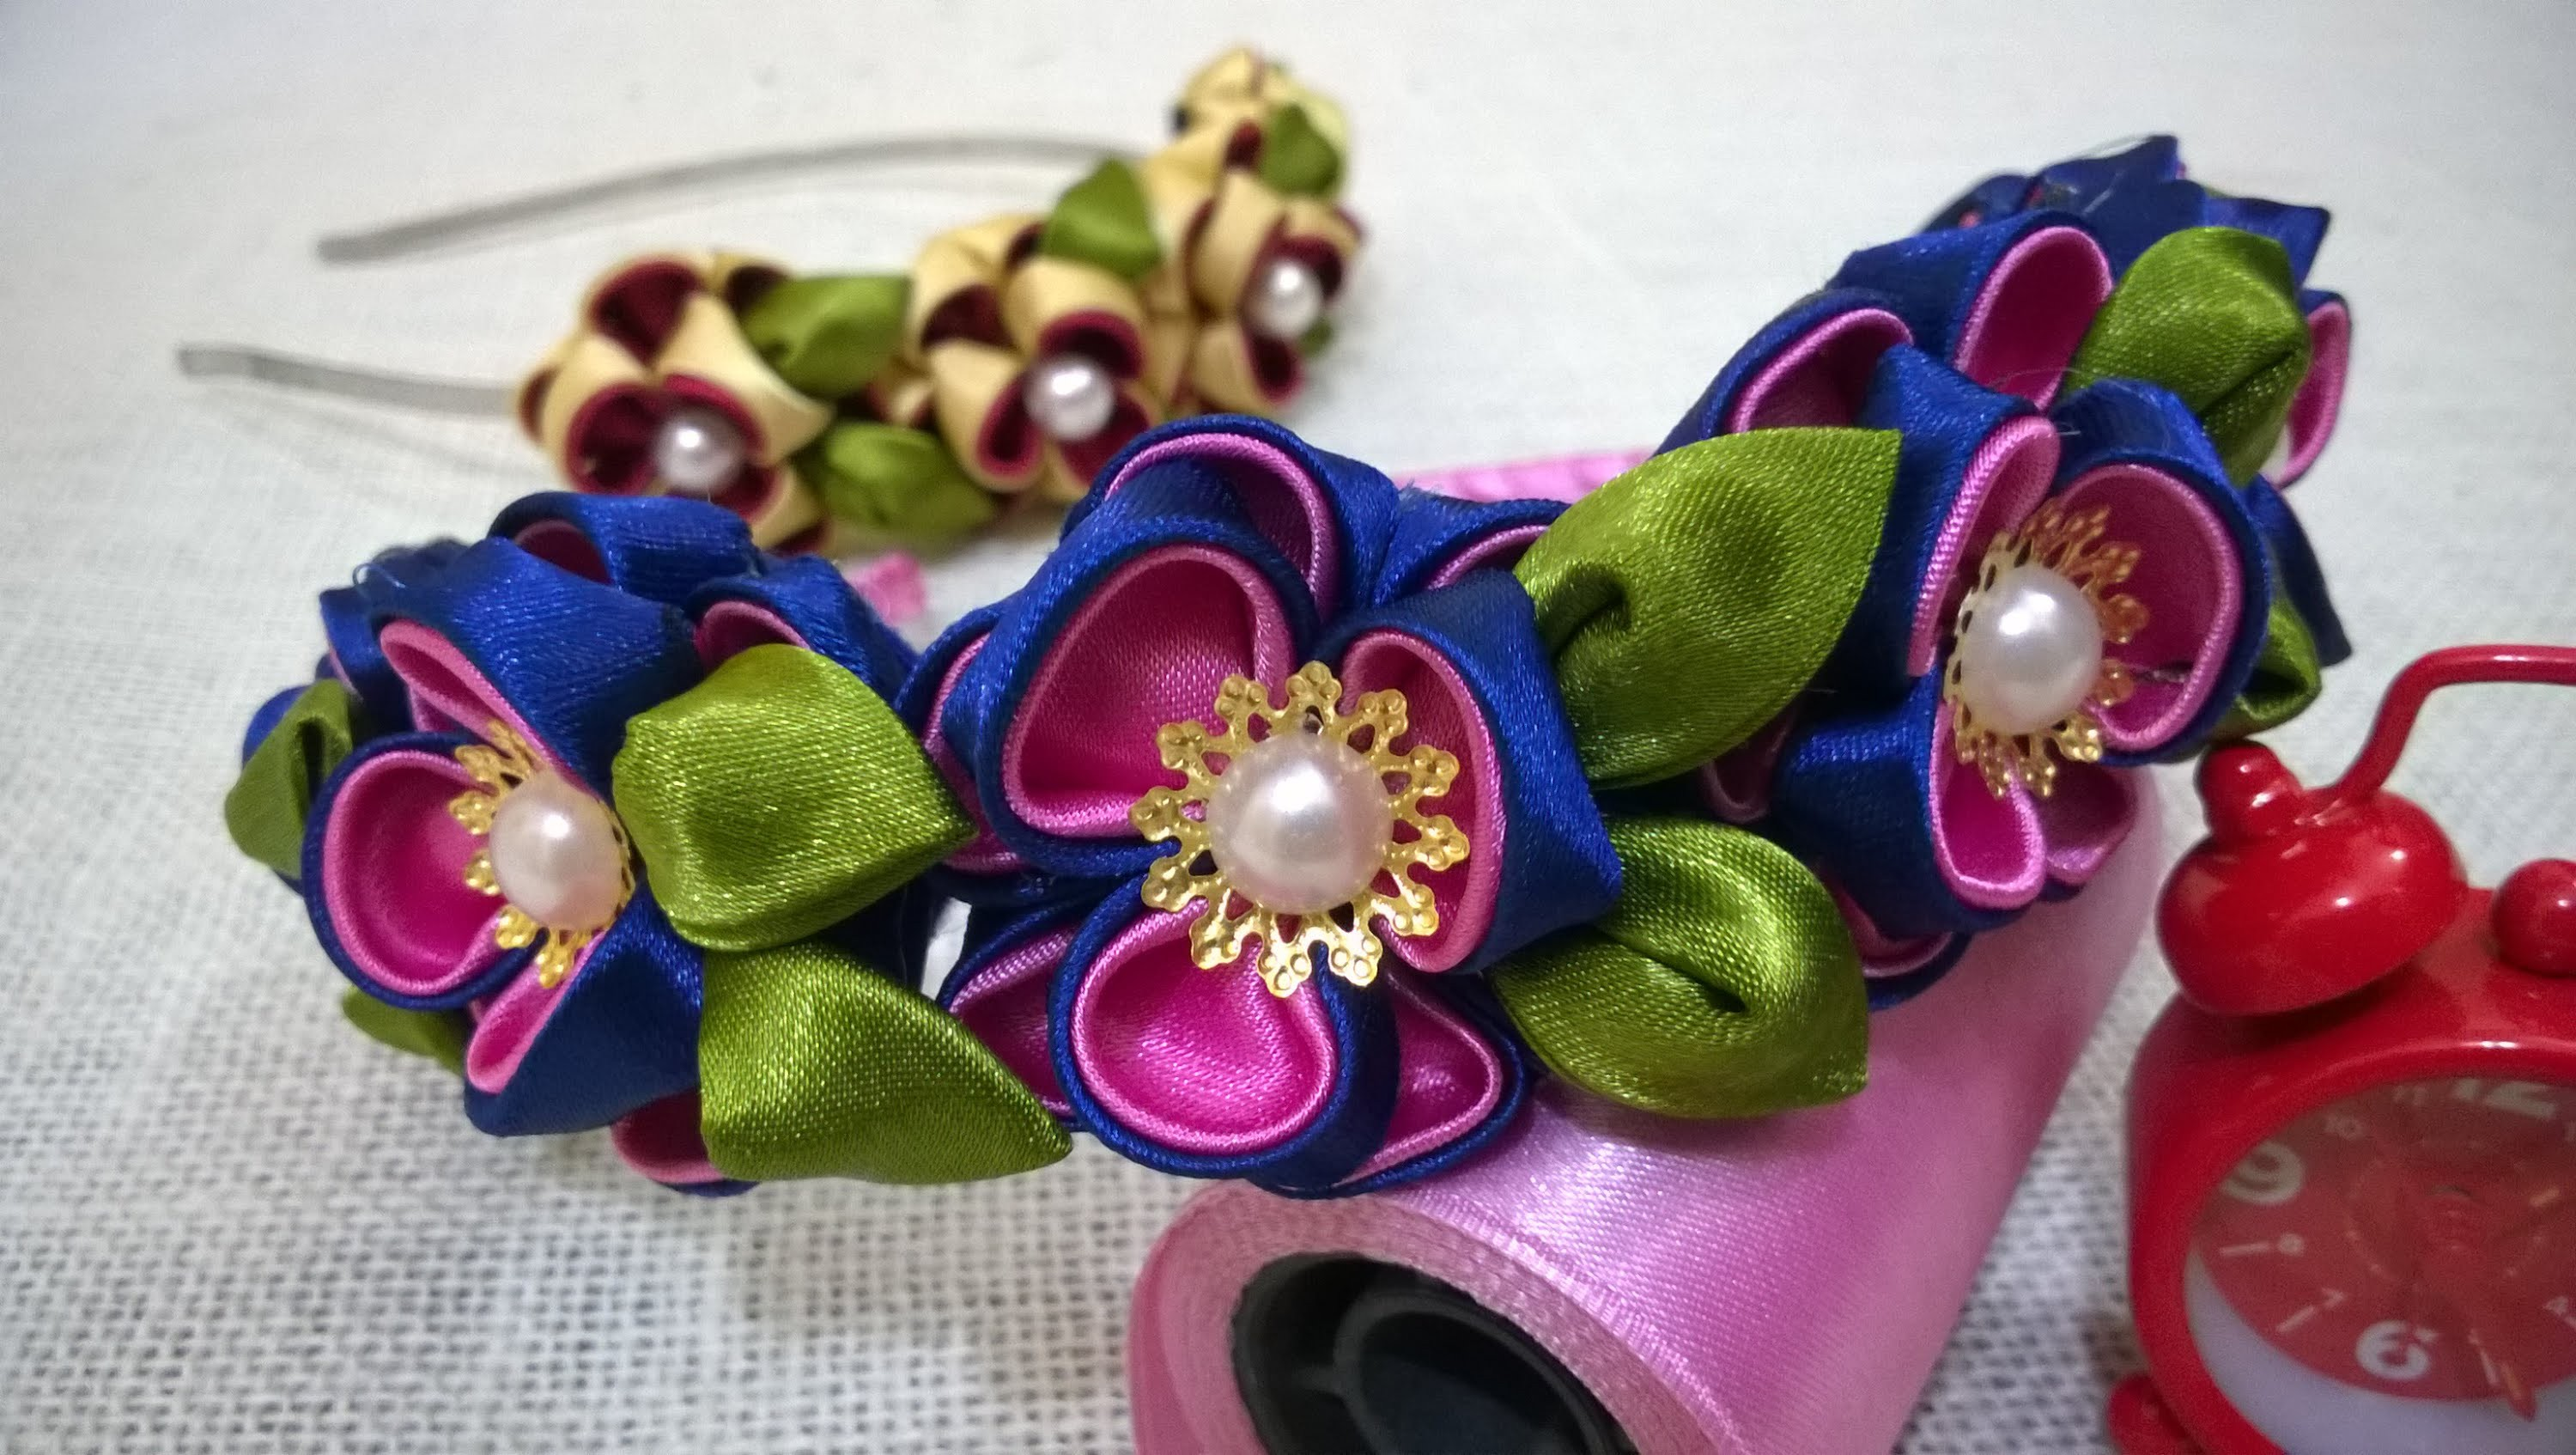 D.I.Y. Kanzashi Flower Headband Tutorial